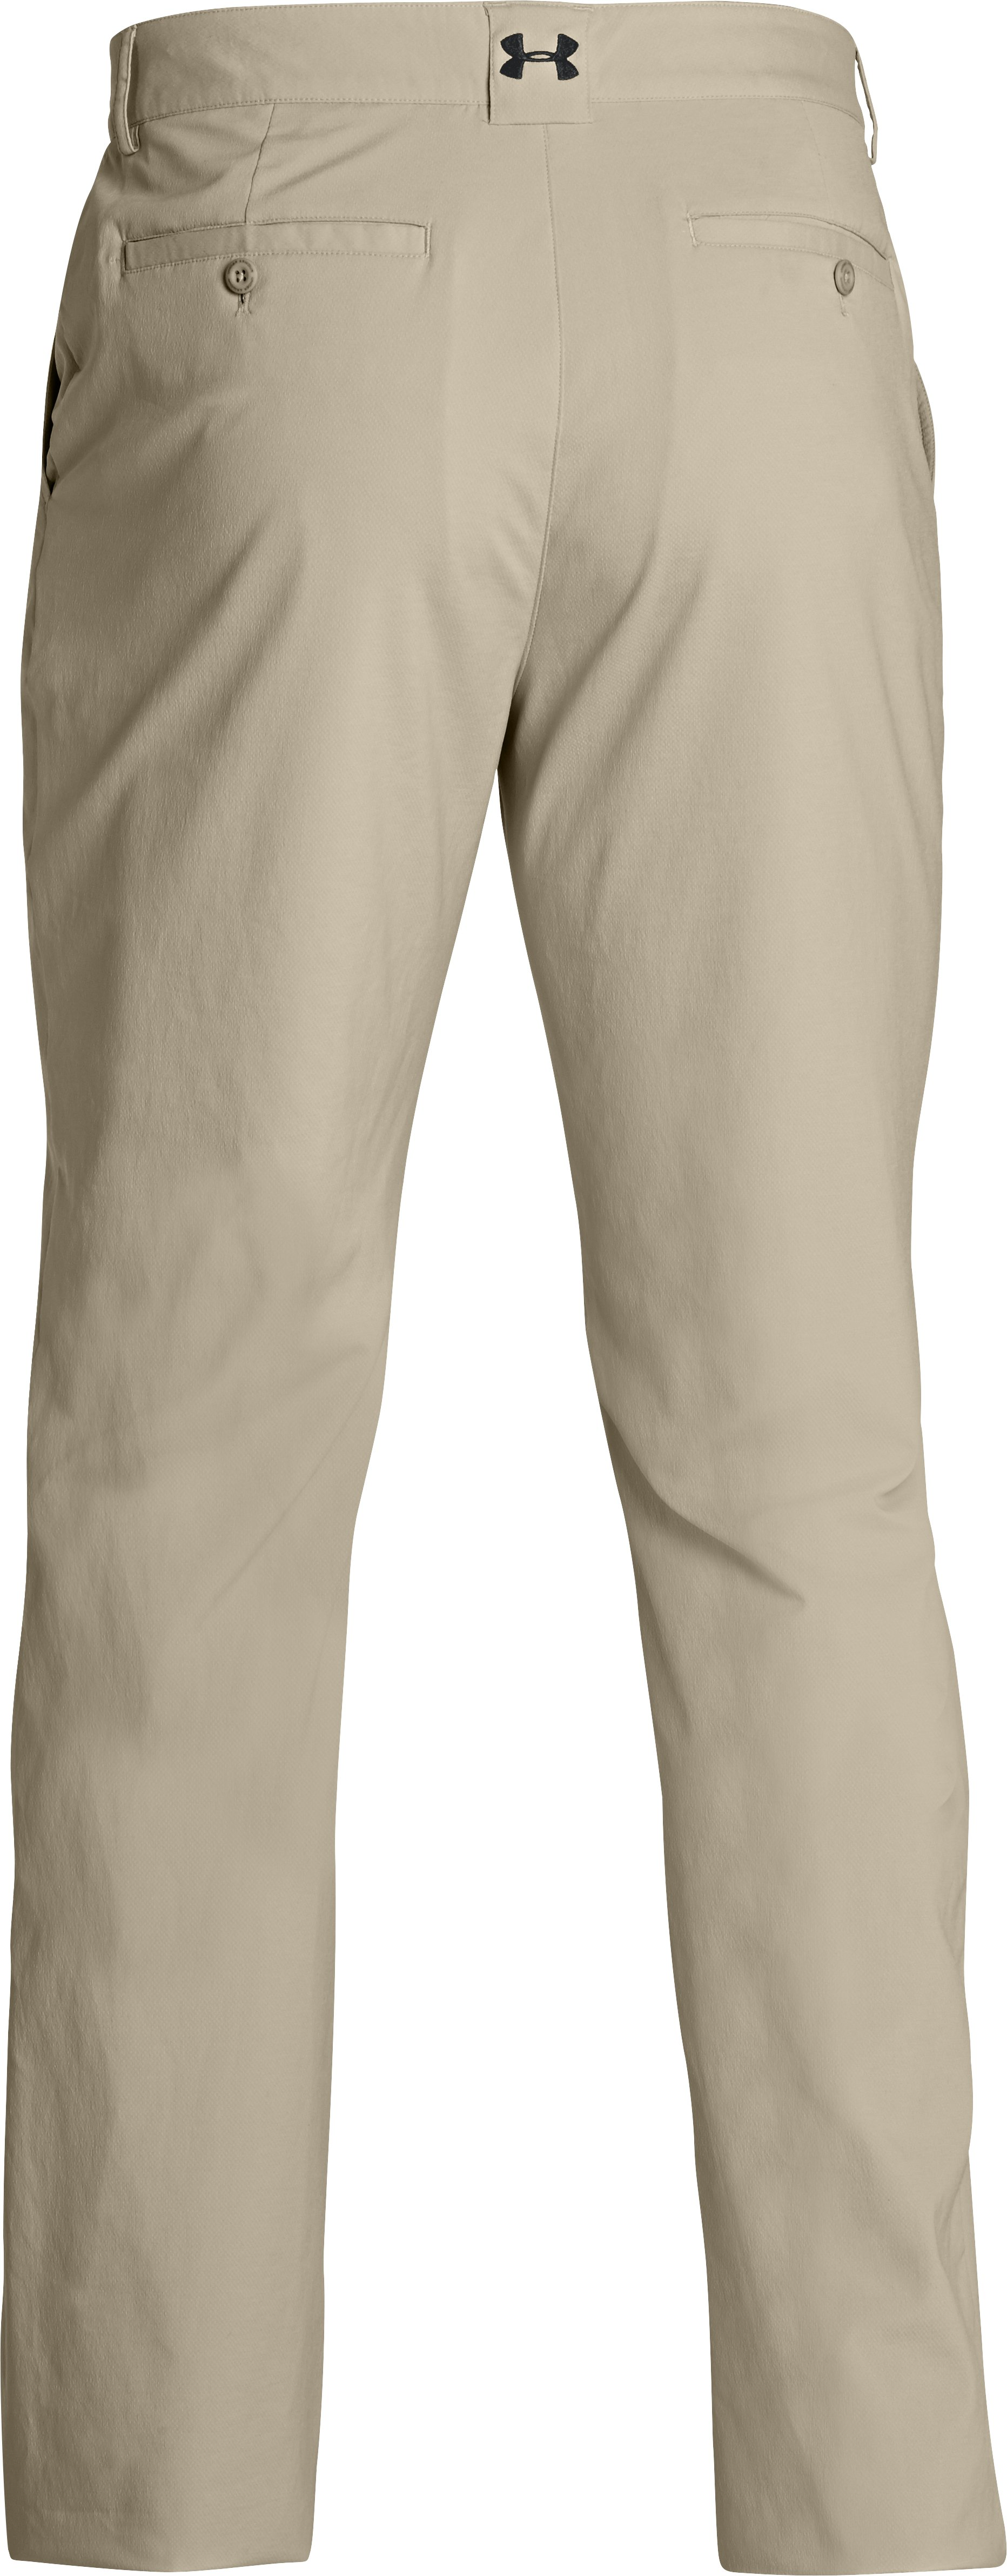 Men's UA Team Undeniable Pants, Sandstorm